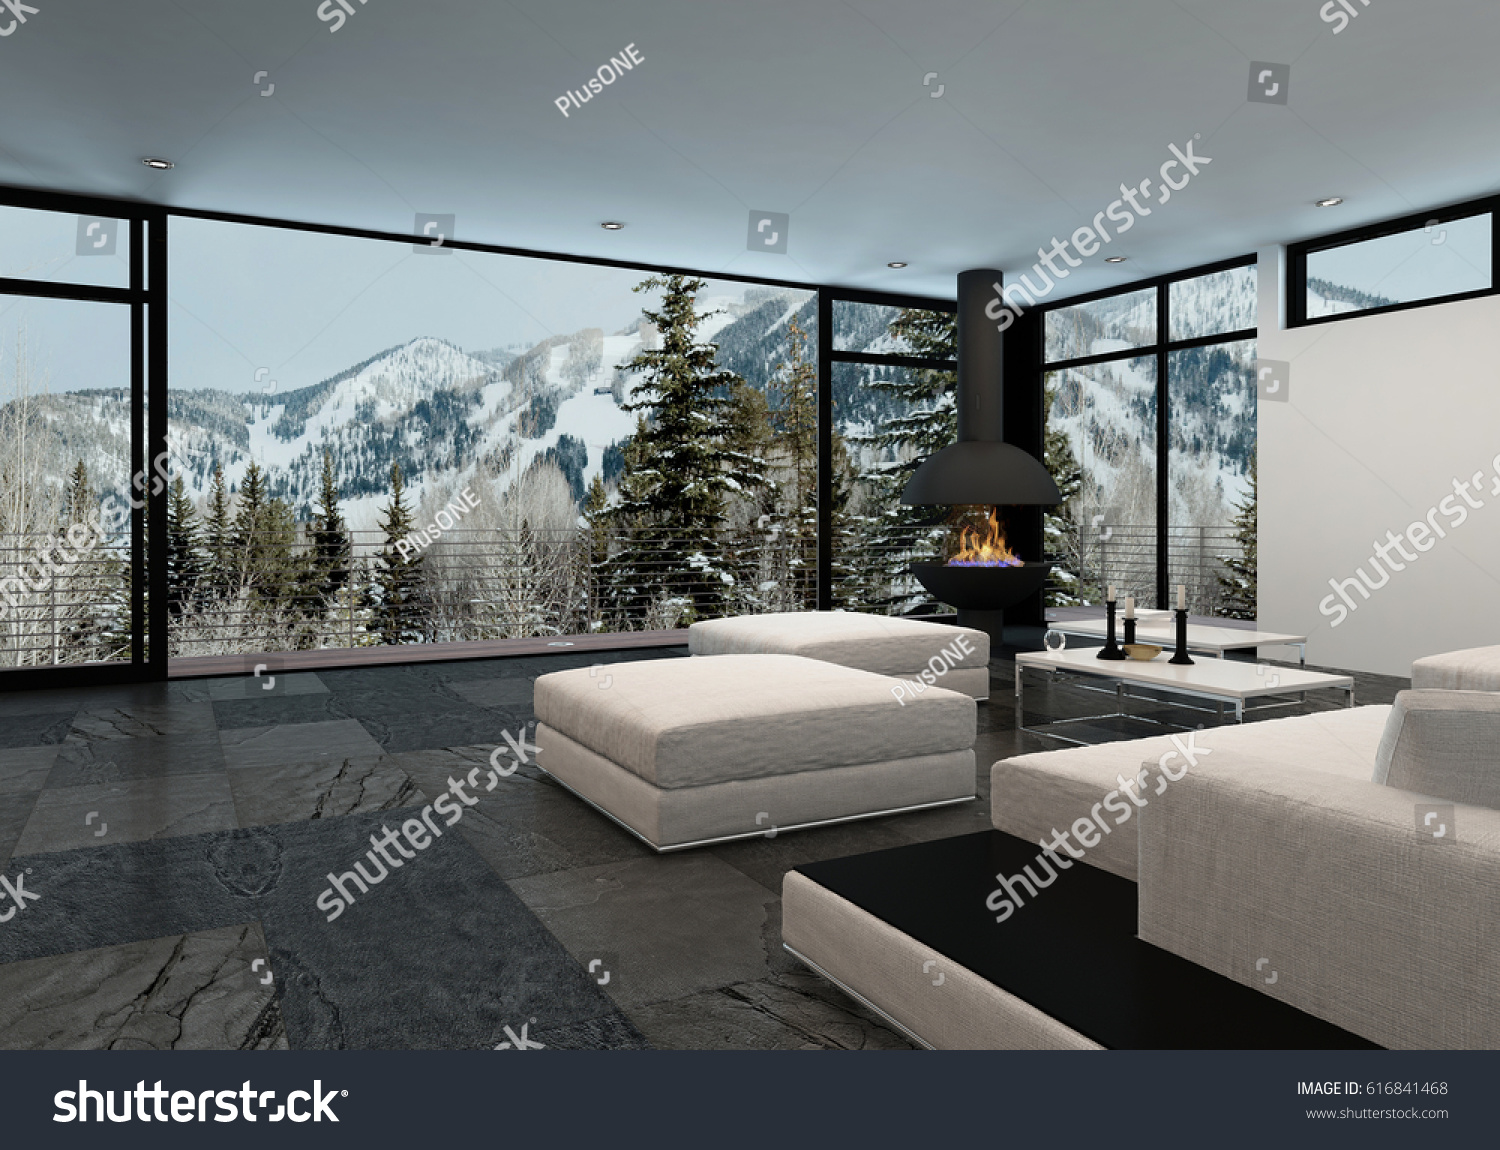 Minimalist luxury home interior mountains large stock for Luxury minimalist house